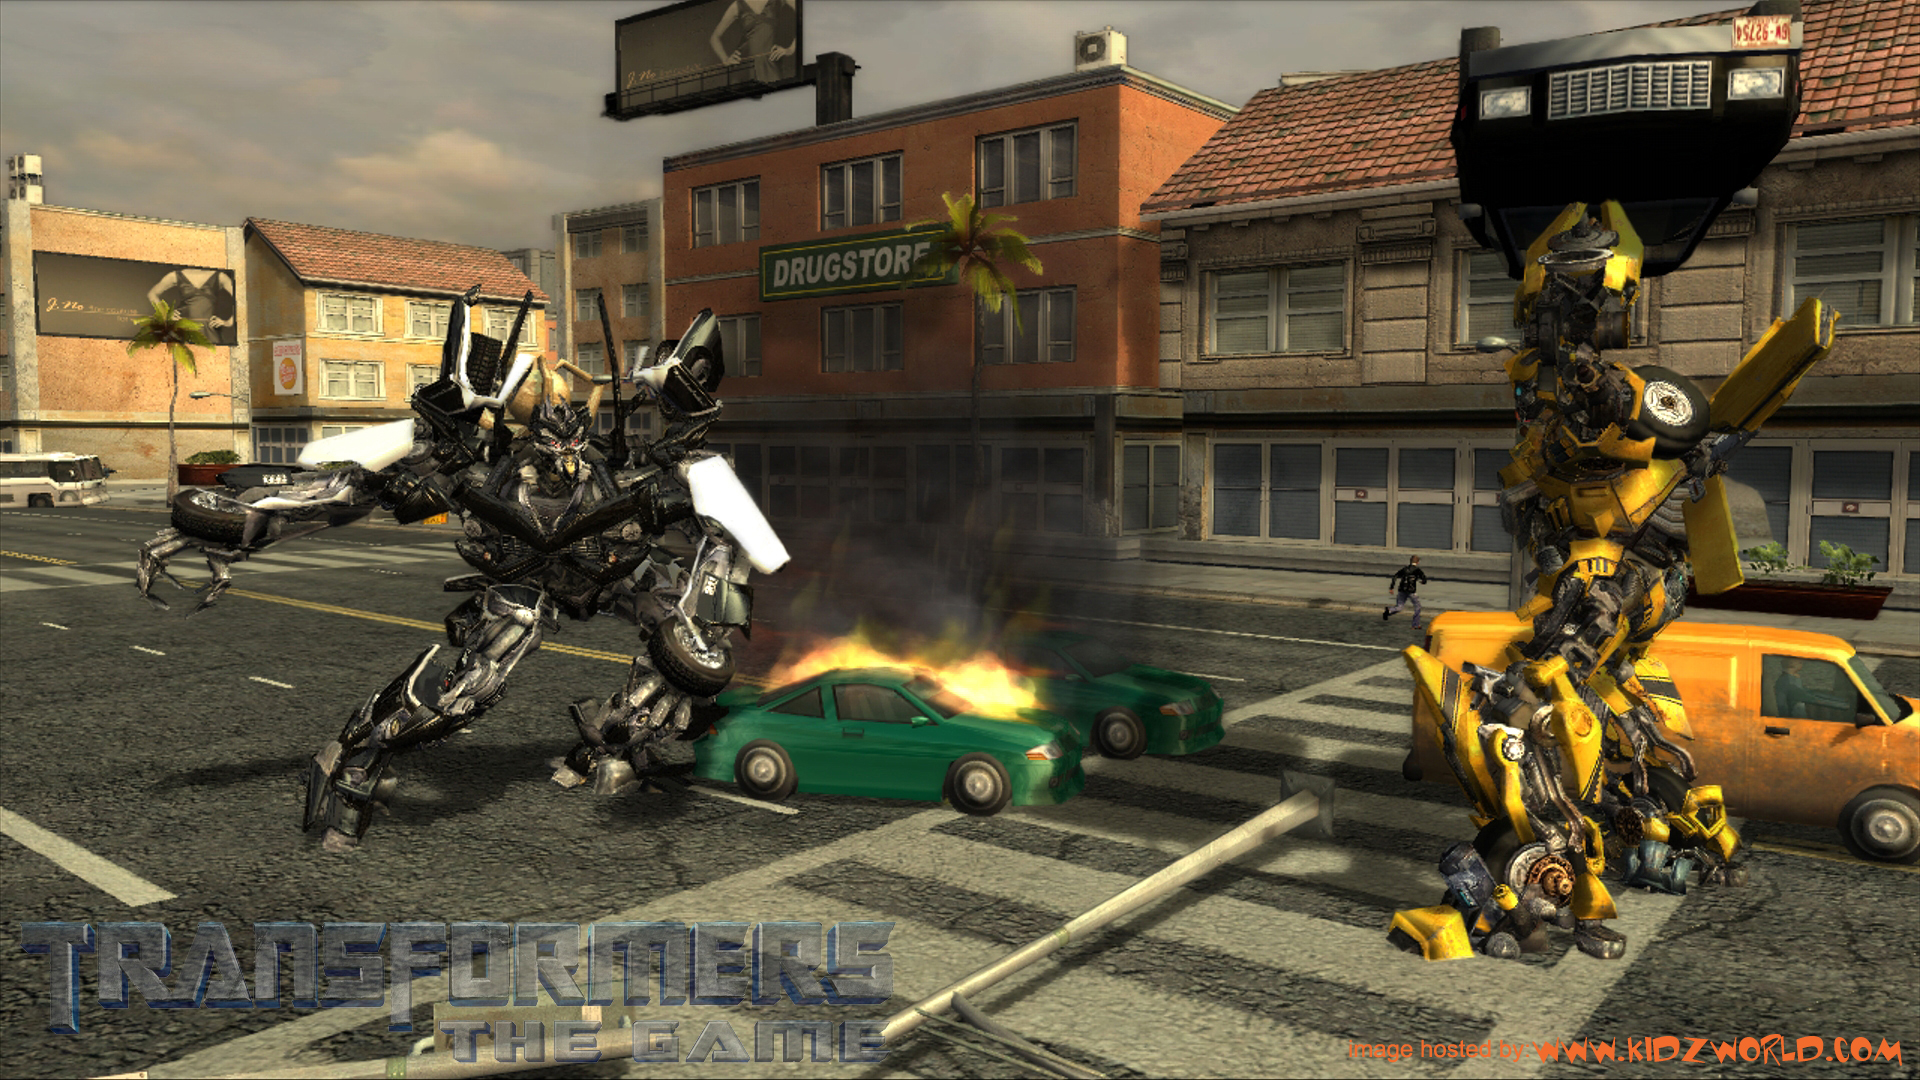 Pokemon Diamond & Pearl Launch | Xbox 360 Transformers Pics | Playstation 3  Game Downloads | News | Previews | DS